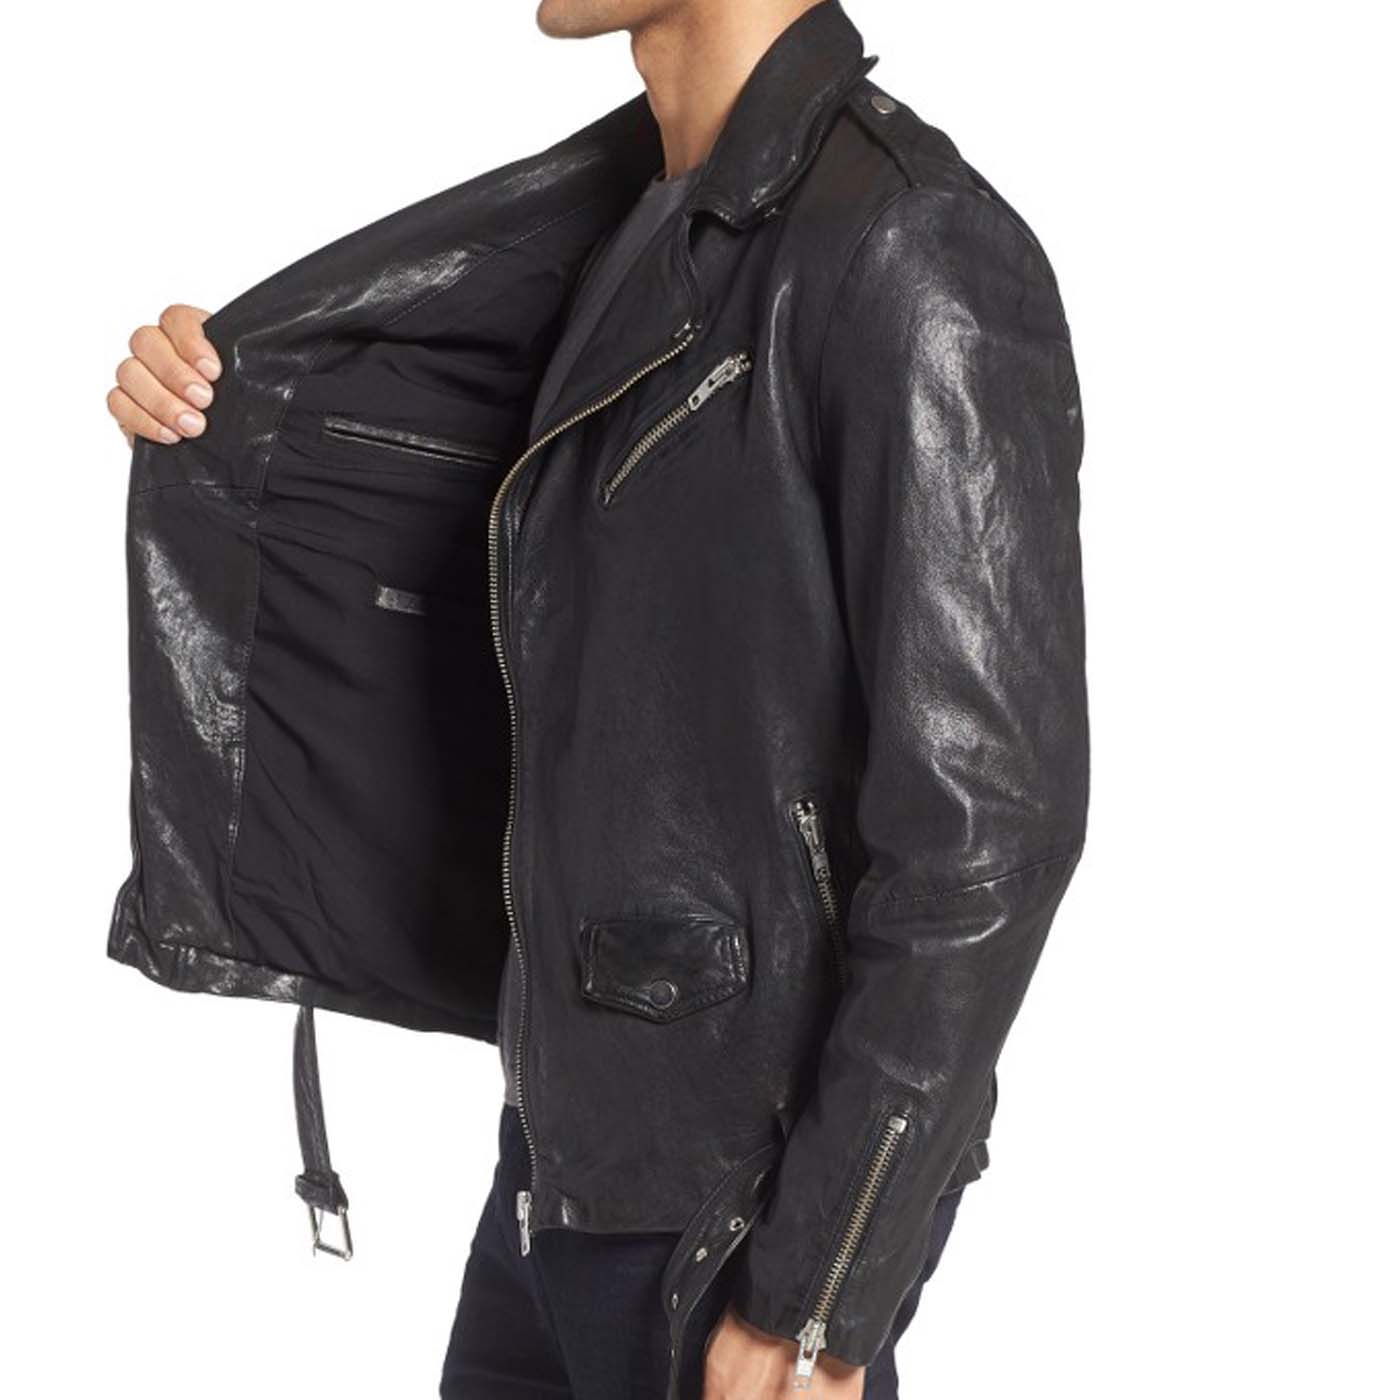 Leather-Biker-Jacket-For-Mens-2.